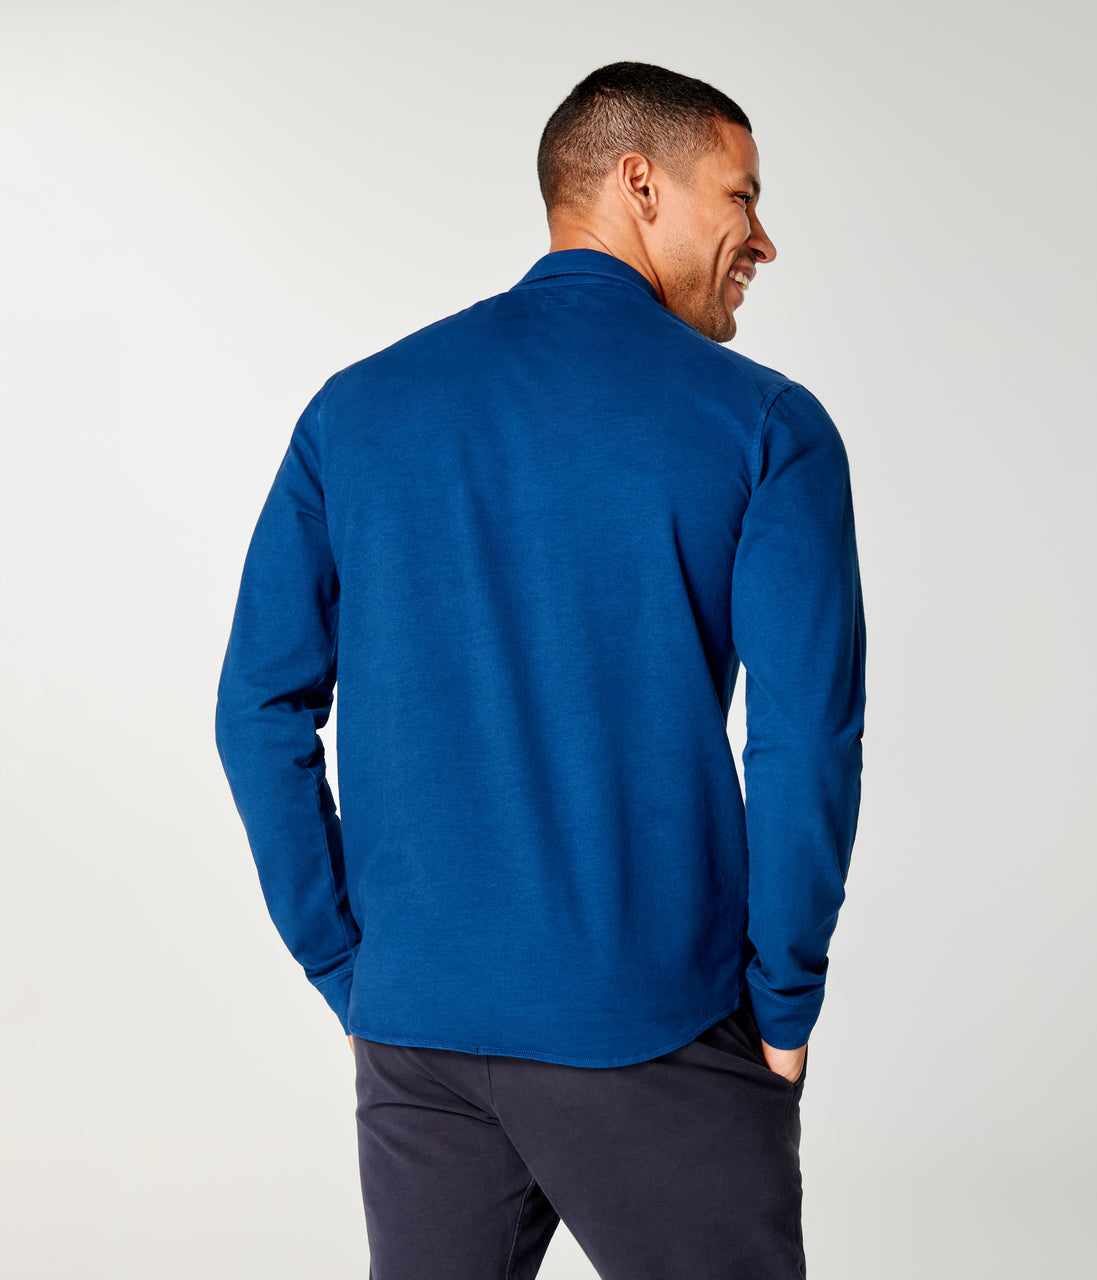 Flex Pro Jersey Soft Shirt Long Sleeve - Blue - Good Man Brand - Flex Pro Jersey Soft Shirt Long Sleeve - Blue